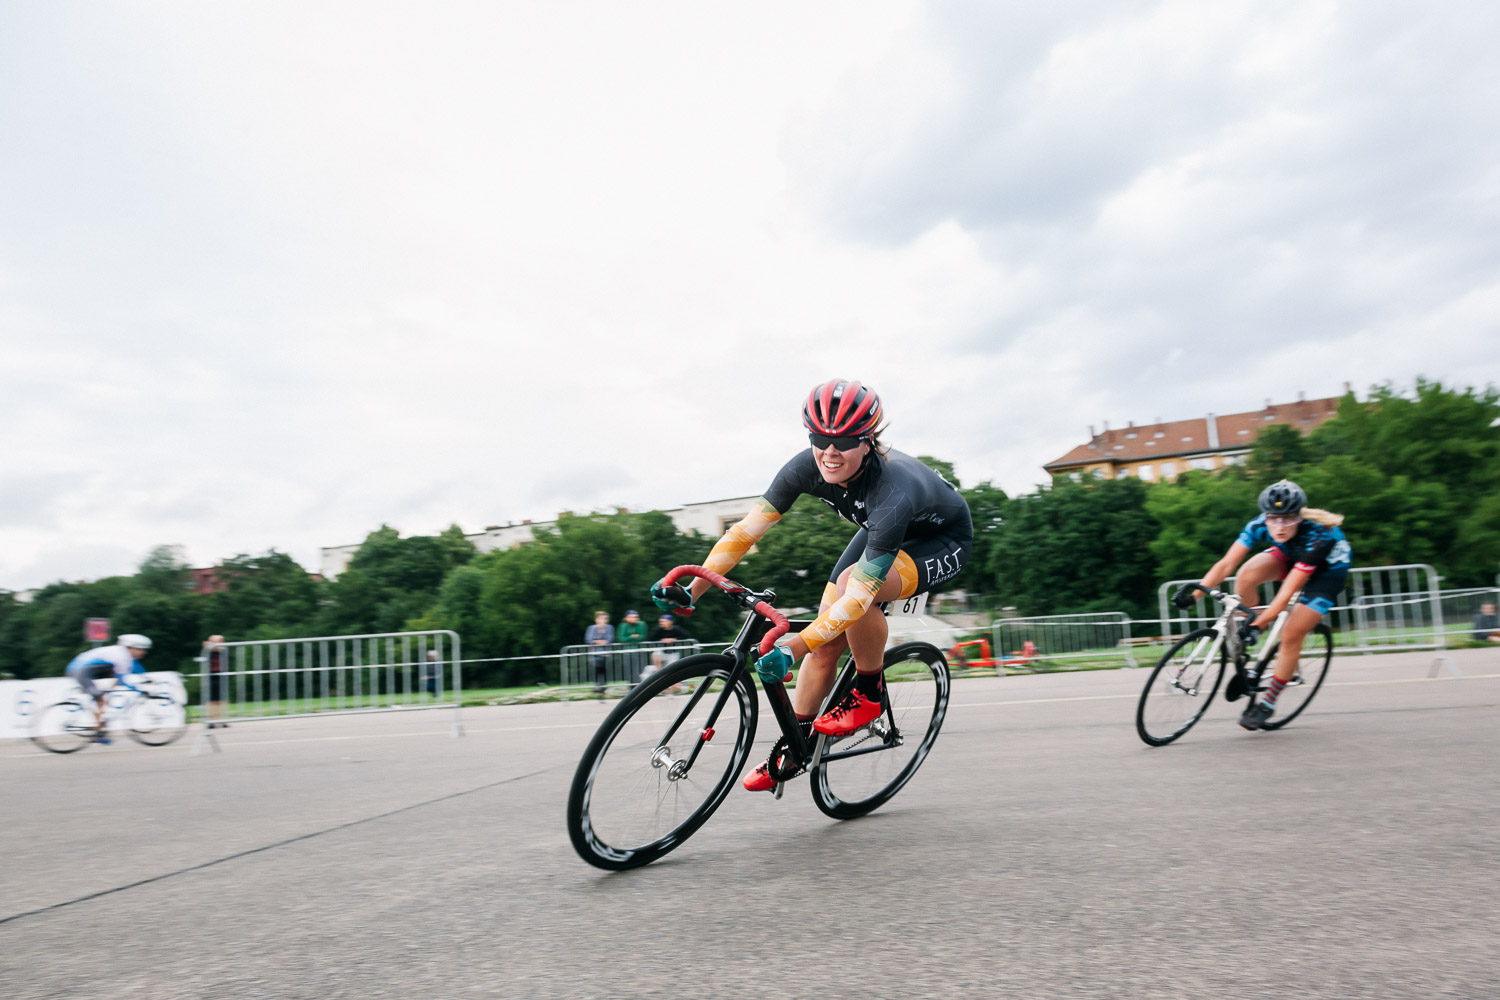 8bar-crit-fixed-gear-bike-race-stefanhaehnel-wmn-fxd-final-17